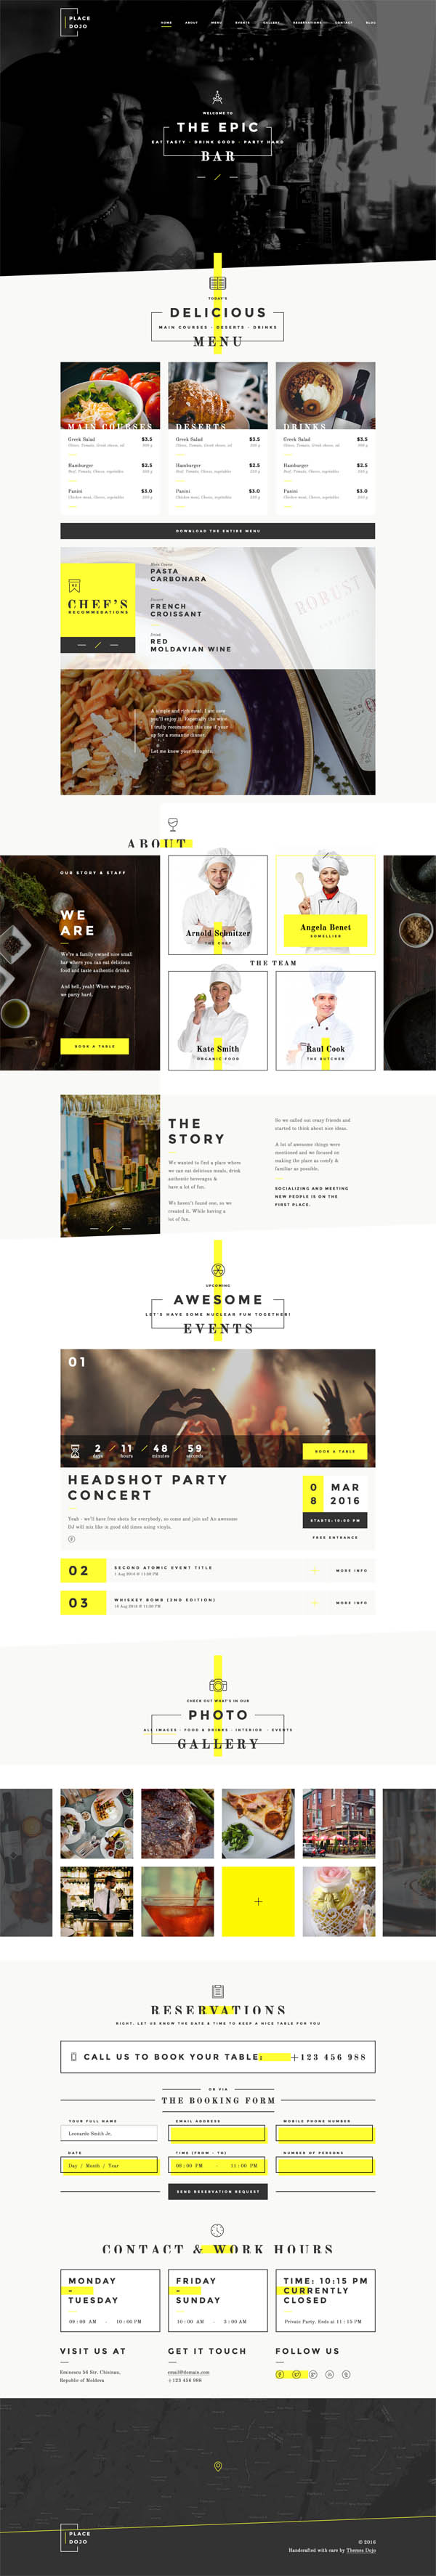 BarDojo - Epic Bar & Restaurant WordPress Theme